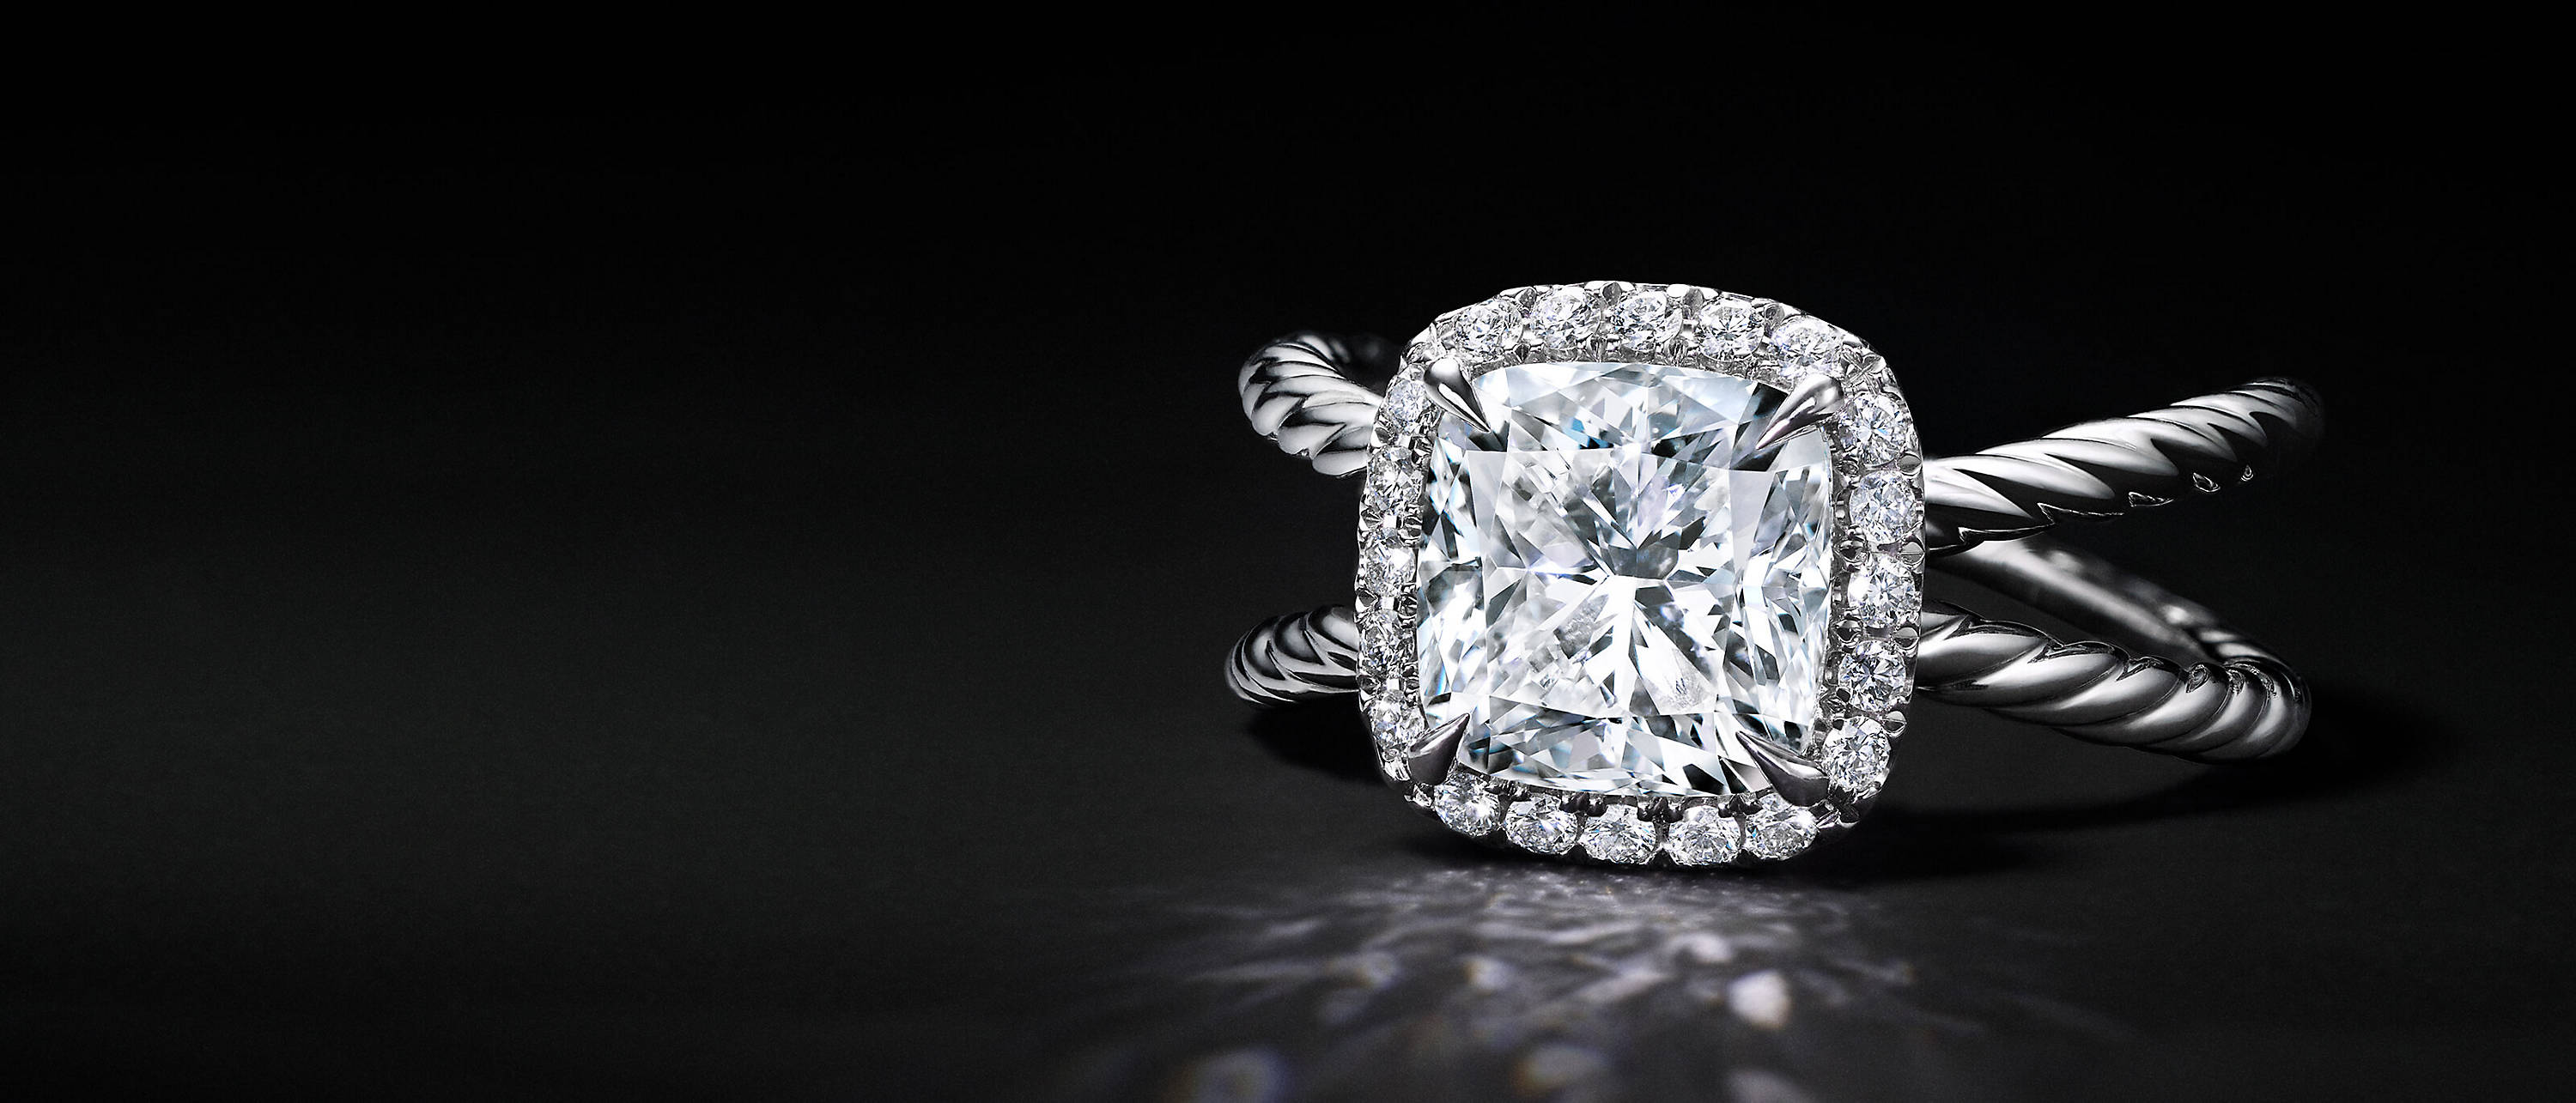 A David Yurman Crossover engagement ring in platinum with a cushion-cut center stone and a halo of diamonds shot against a black backdrop. The ring is placed so that its diamonds are in full view, casting light on the surface.